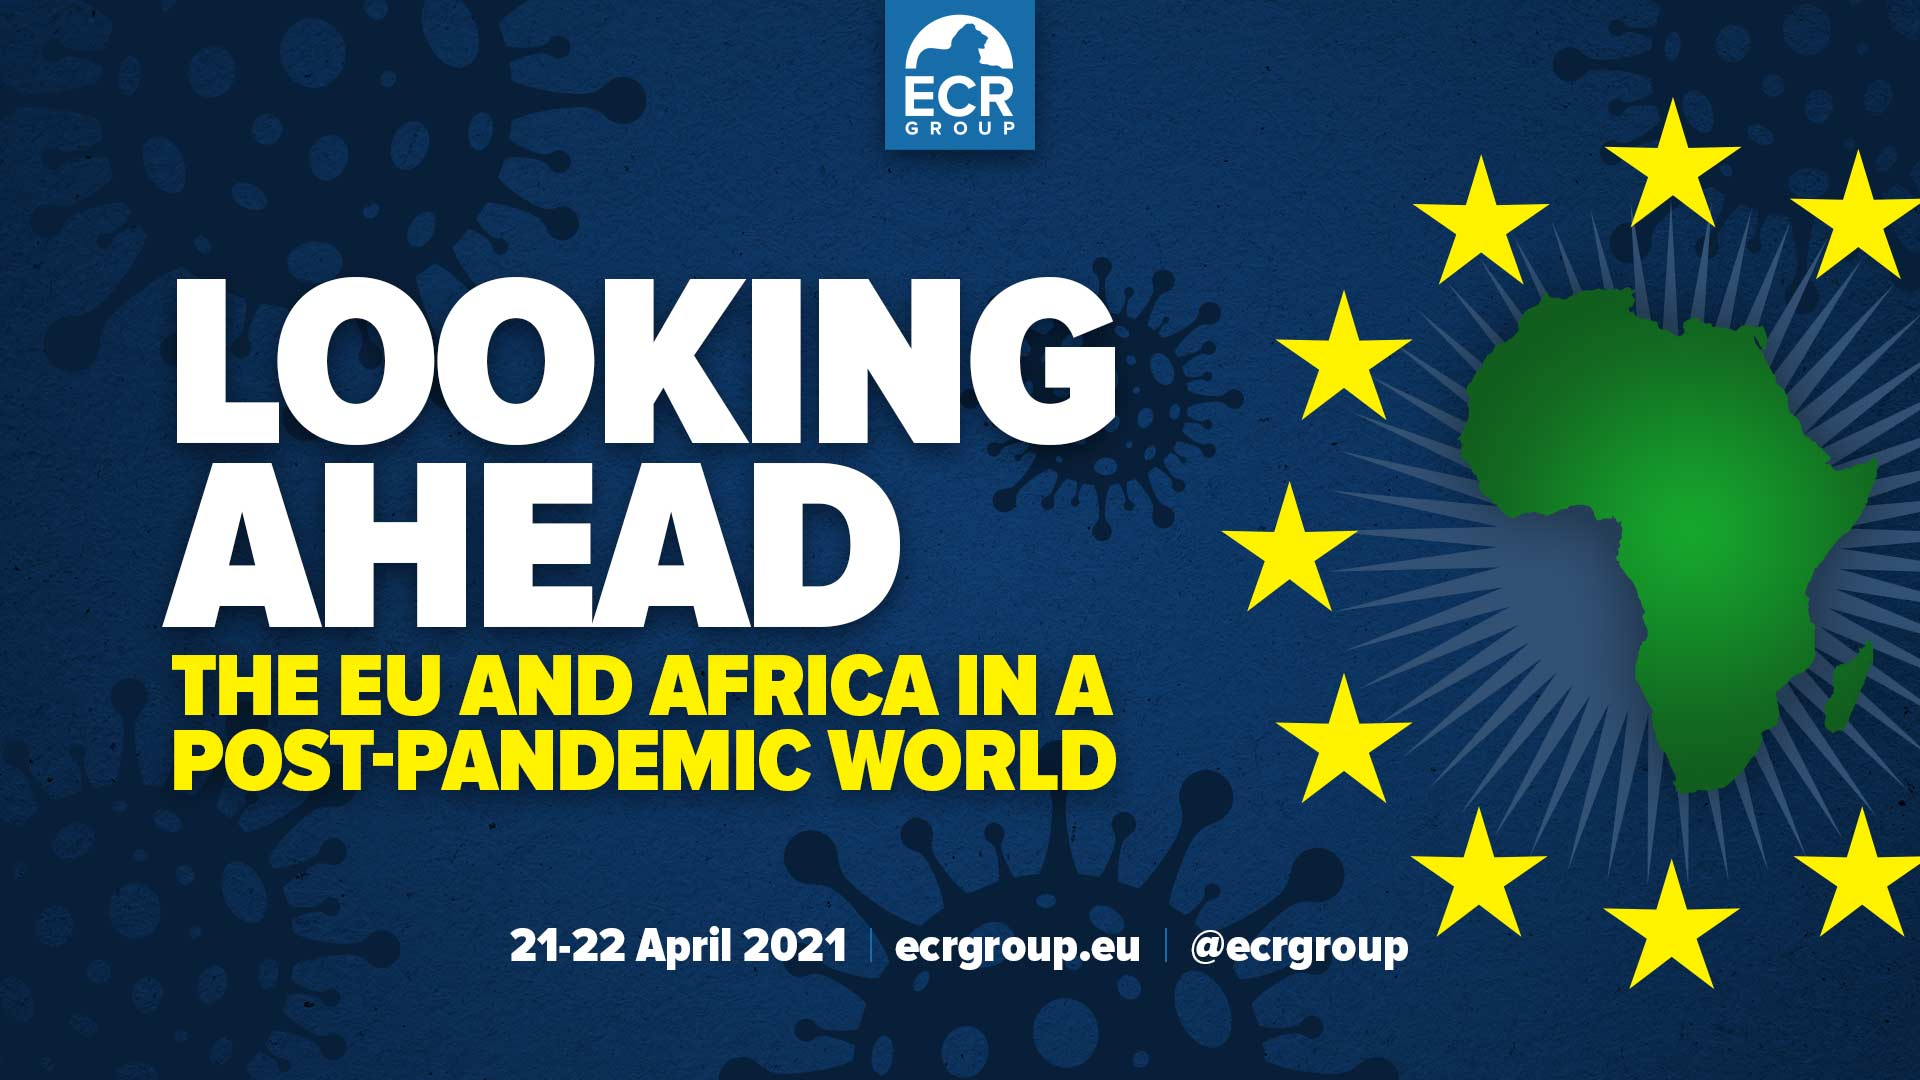 Looking ahead: The EU and Africa in a post-pandemic world